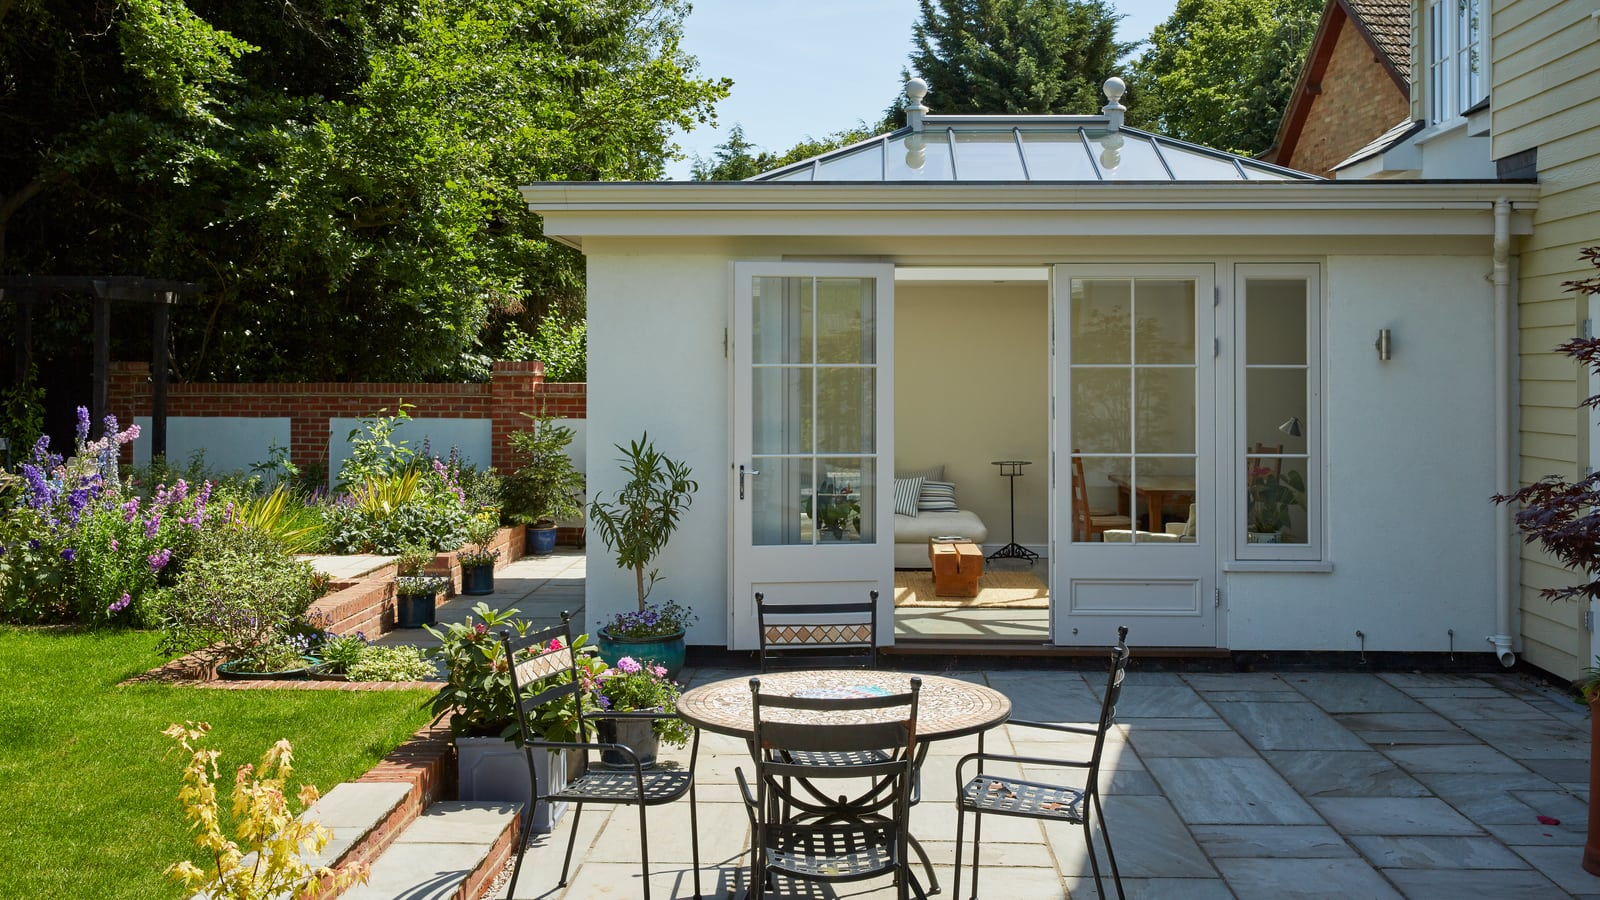 Westbury orangery featuring co-ordinating windows, doors and fascia